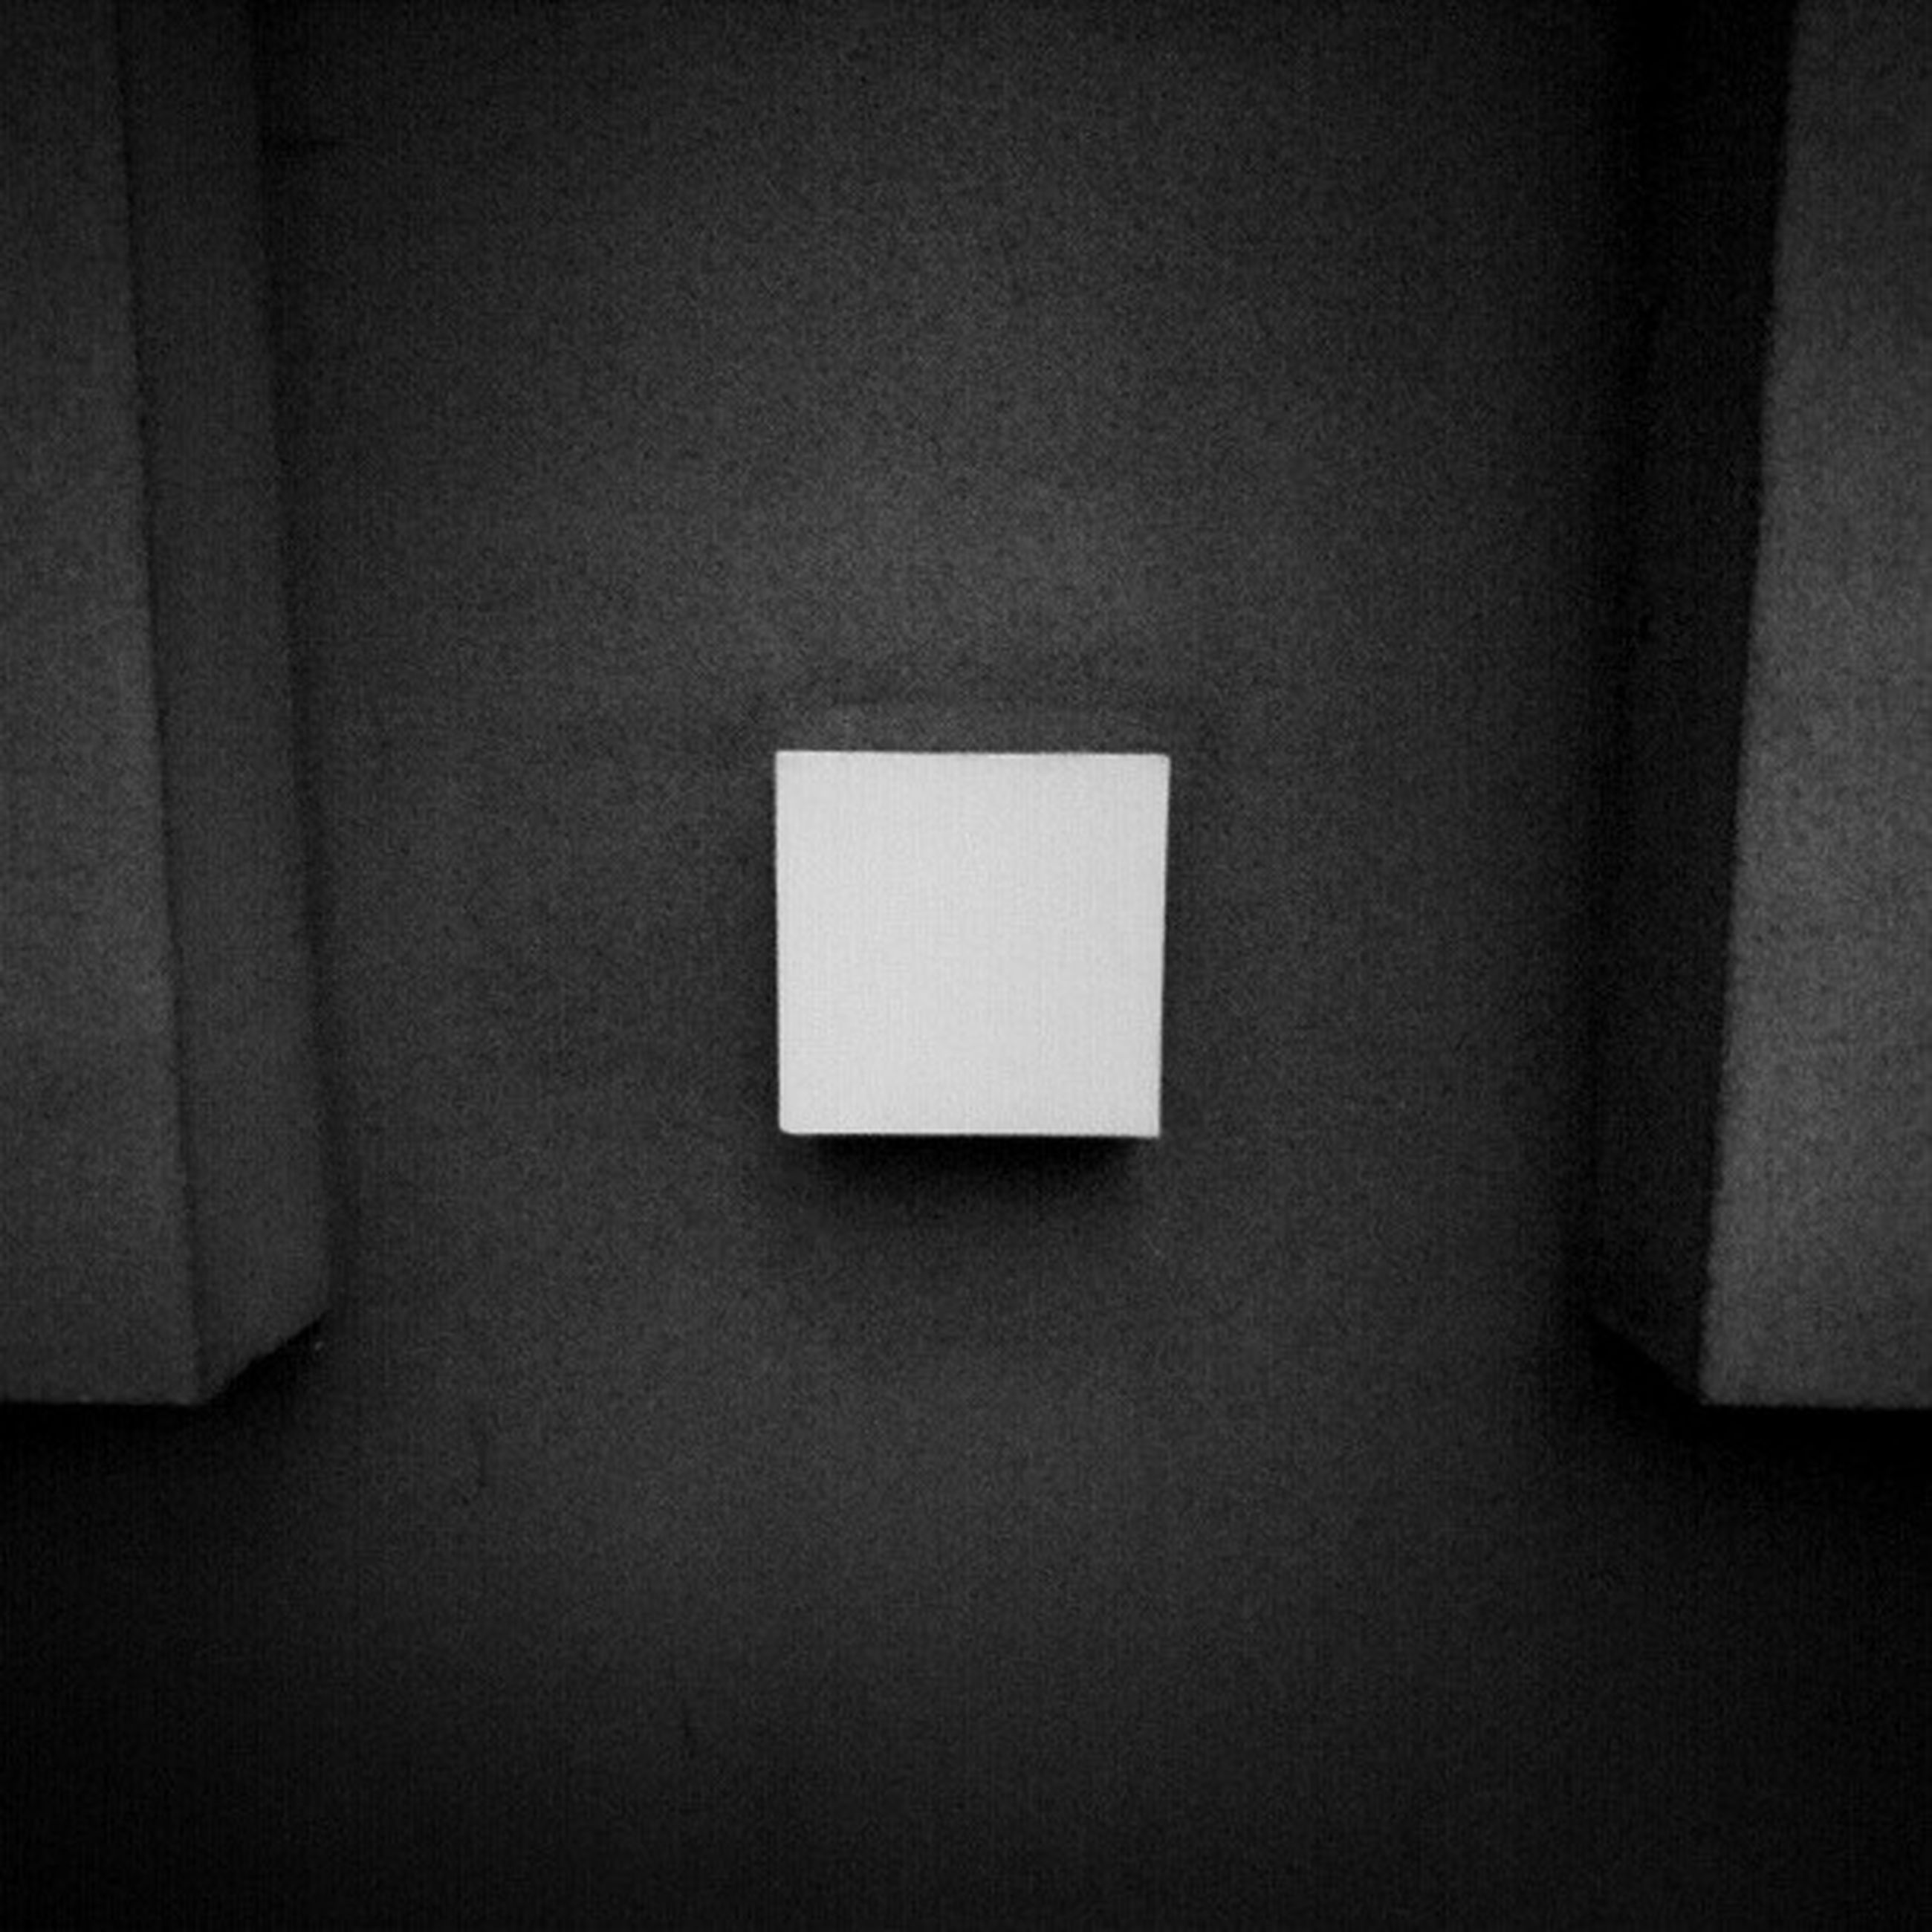 indoors, wall - building feature, copy space, wall, home interior, close-up, white color, architecture, no people, built structure, white, dark, window, shadow, electricity, simplicity, domestic room, pattern, illuminated, darkroom